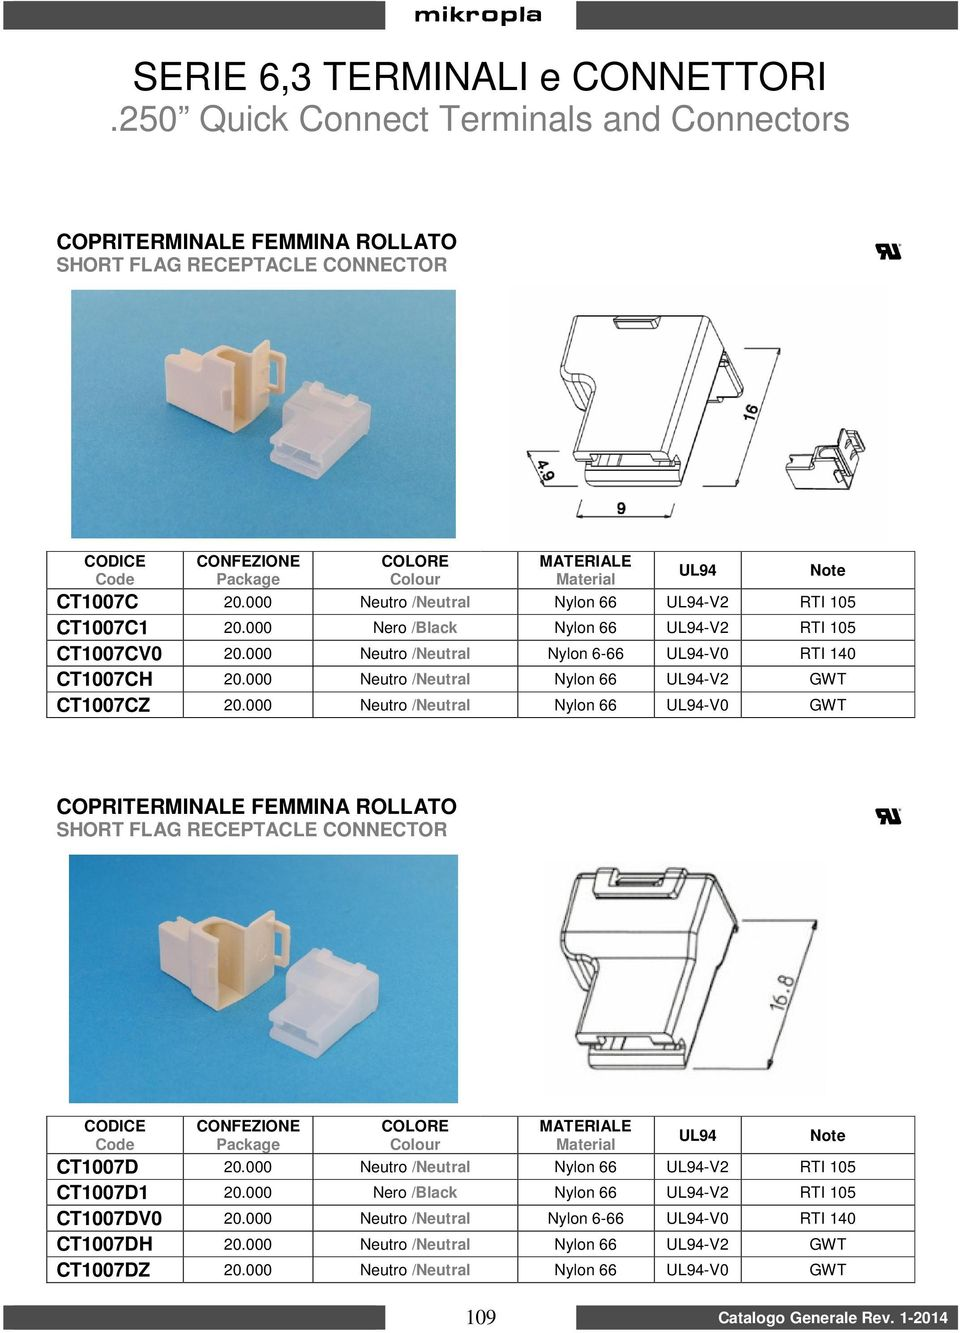 000 Neutro /Neutral Nylon 66 -V0 GWT COPRITERMINALE FEMMINA ROLLATO SHORT FLAG RECEPTACLE CONNECTOR CT1007D 20.000 Neutro /Neutral Nylon 66 -V2 RTI 105 CT1007D1 20.